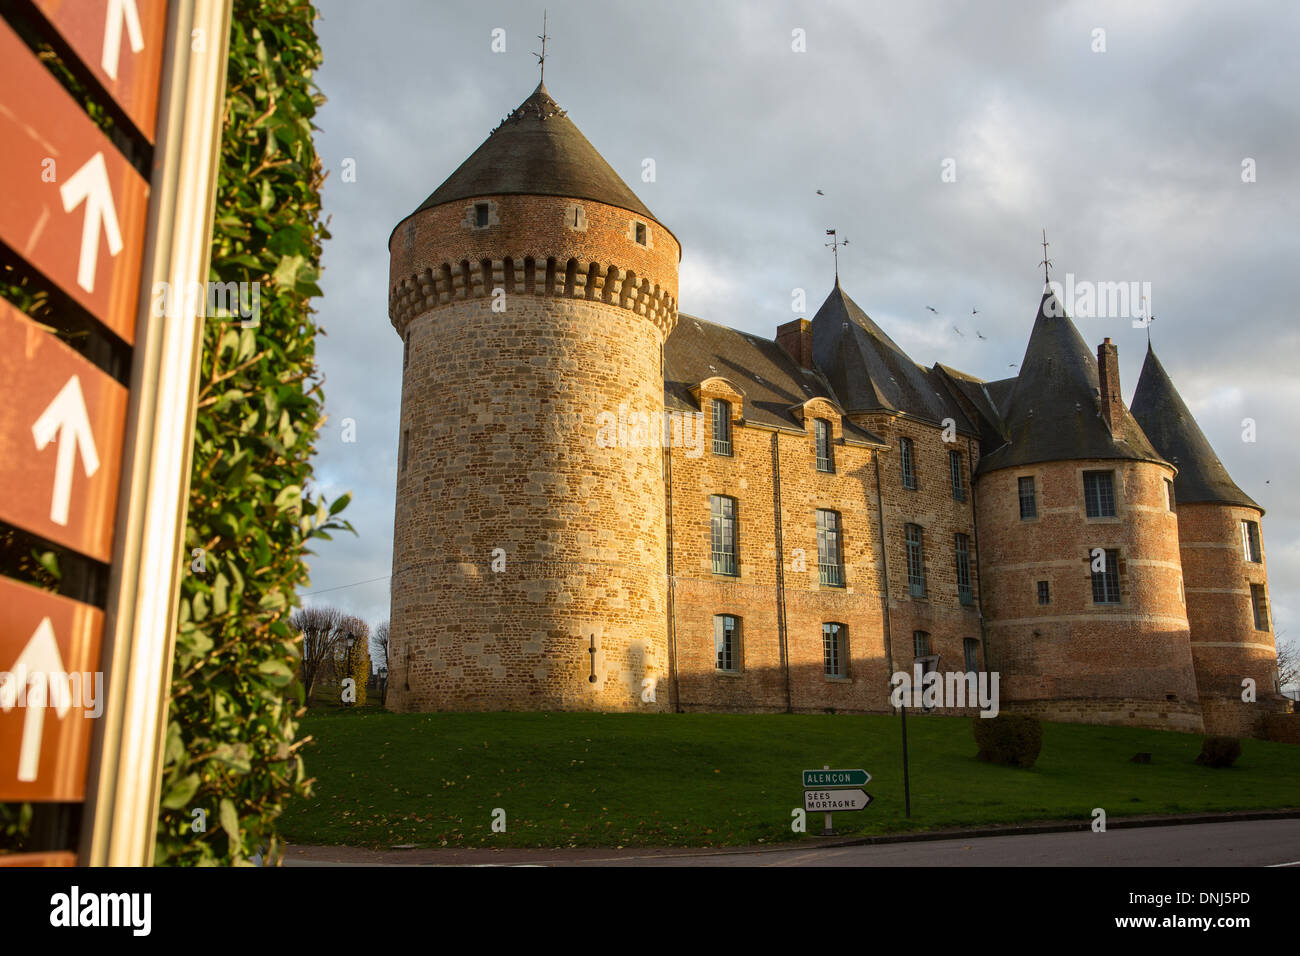 CHATEAU DE GACE, MILITARY EDIFICE BUILT IN THE 12TH CENTURY IN STONE AND RED BRICK, TRANSFORMED INTO A LORD'S RESIDENCE AND OCCUPIED BY THE ENGLISH DURING THE HUNDRED YEARS WAR, TODAY THE MAYOR'S OFFICE AND MUSEUM OF THE DAME AUX CAMELIAS, GACE, ORNE (61) - Stock Image